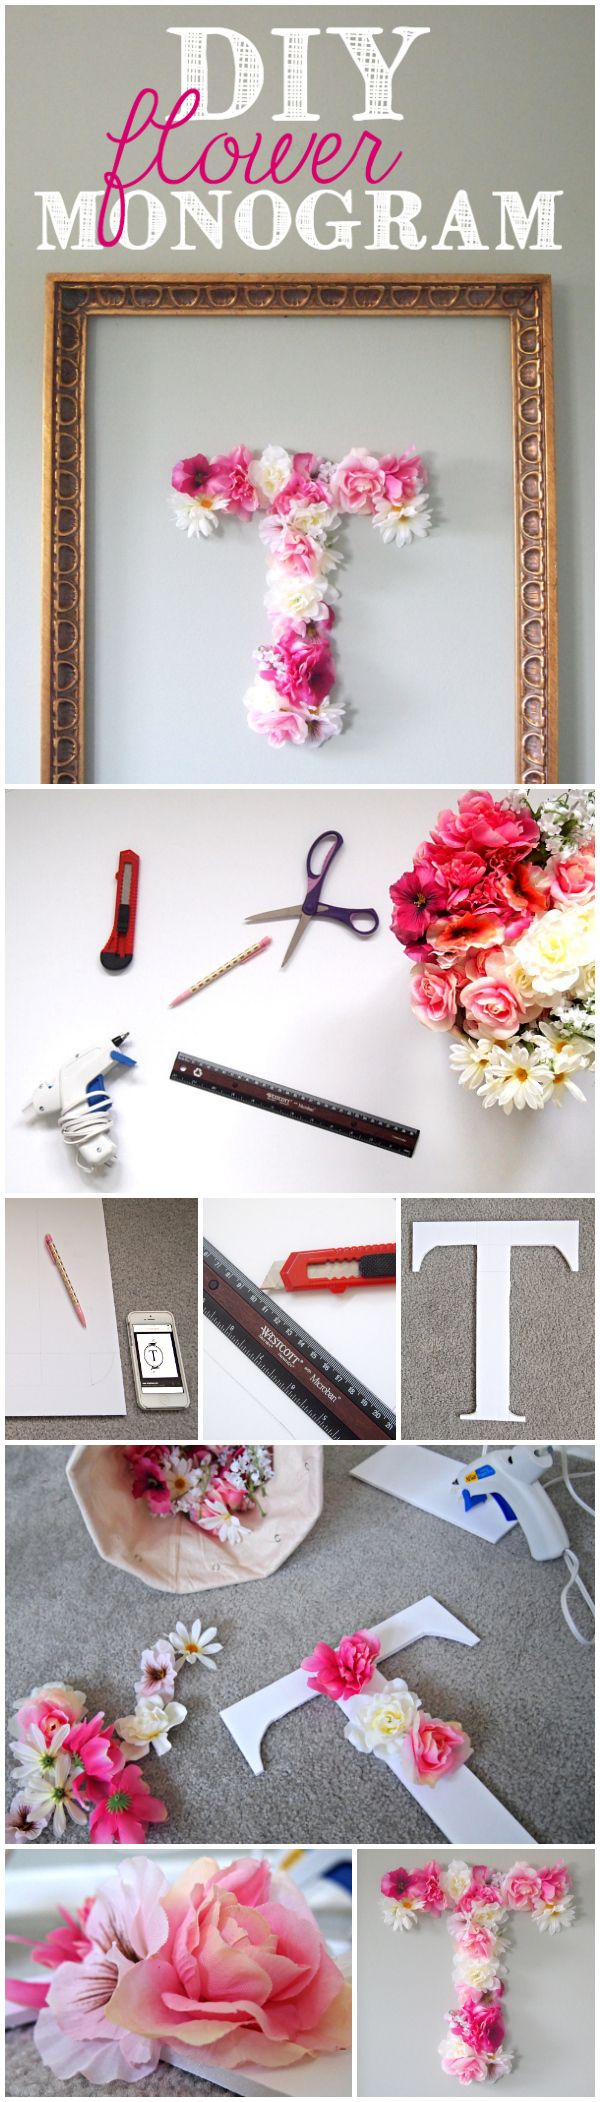 DIY Faux Flower Monogram for a dorm maybe?